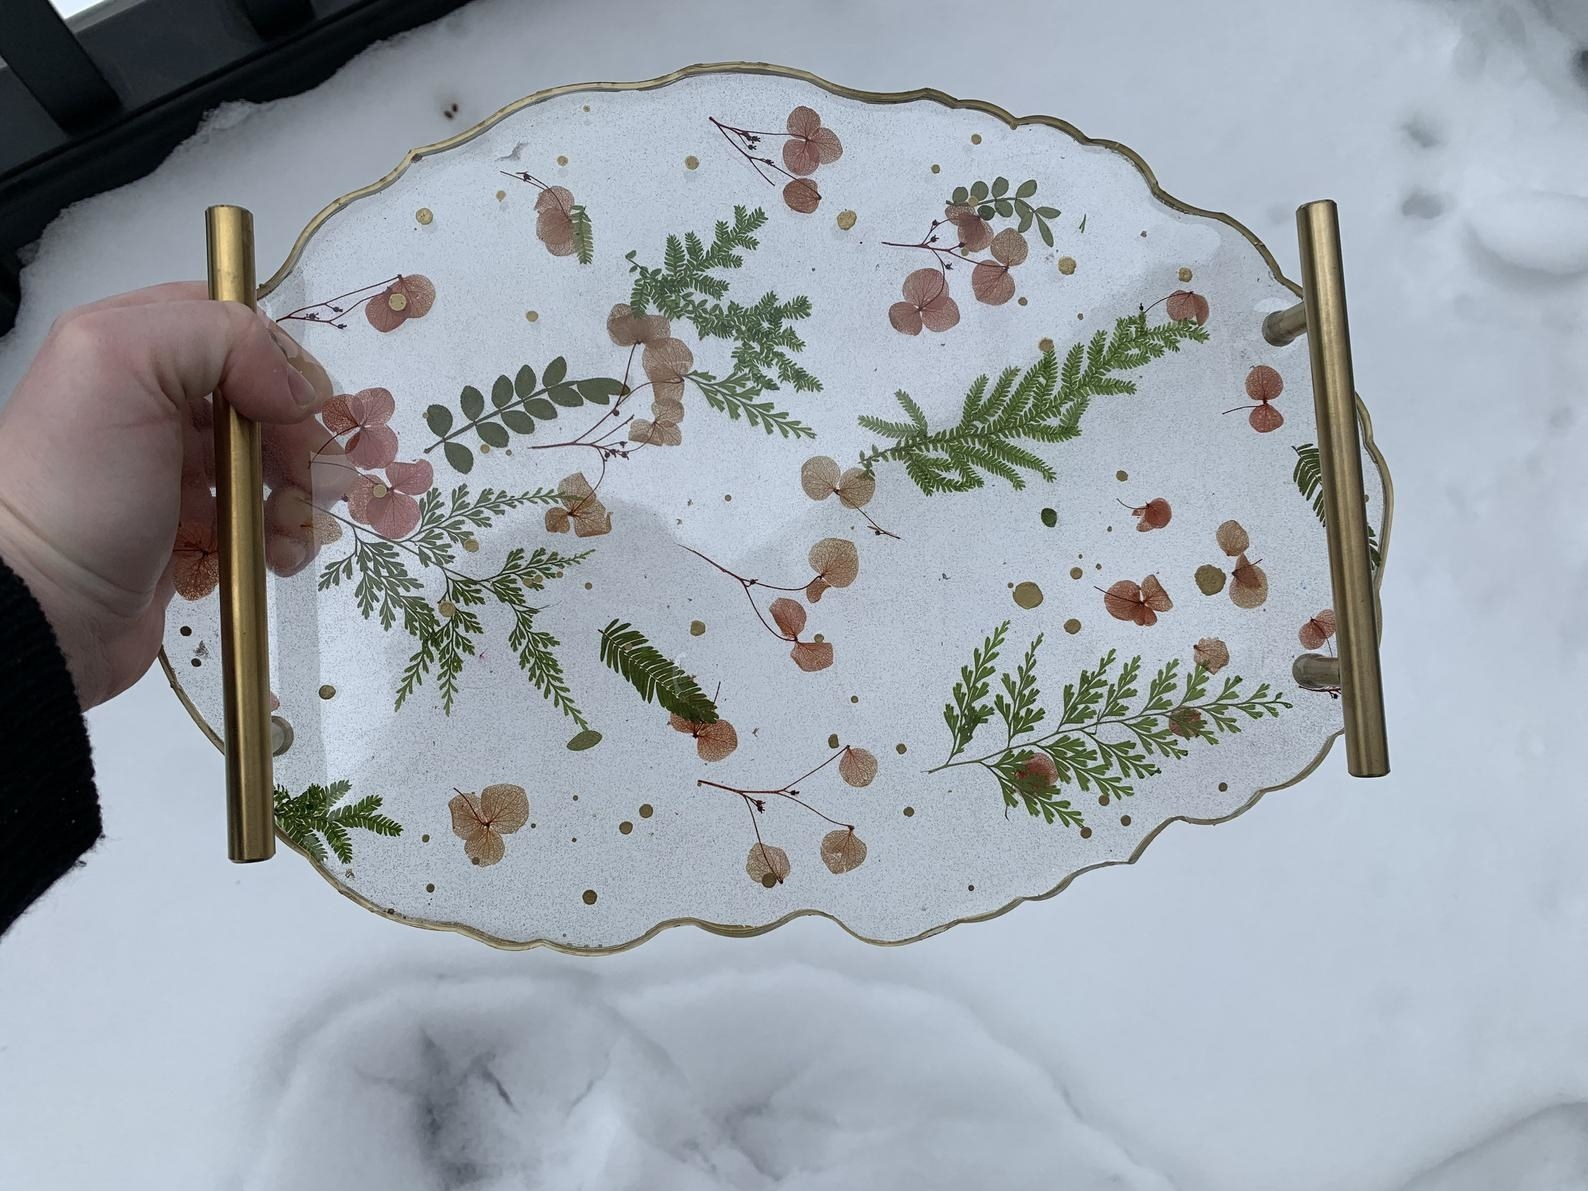 A clear resin tray with gold handles and pink flowers and green leaves designed throughout